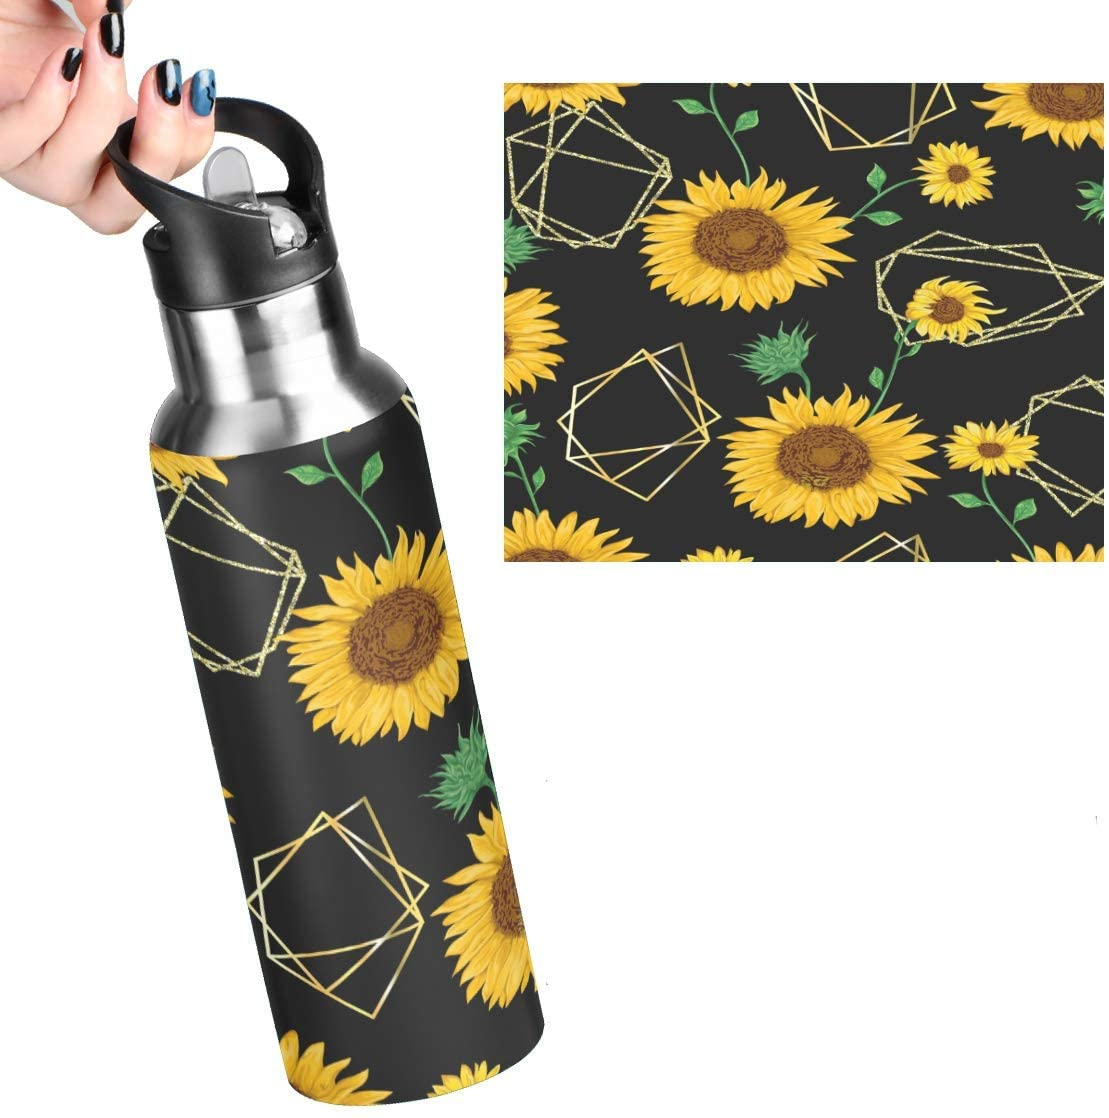 Vintage Sunflower Leakproof Reusable Stainless Steel Water Bottle with Straw 20oz Yellow Summer Floral Coffee Travel Thermos Flask Double Walled Vacuum Insulated Thermoses for Women Men Kids.